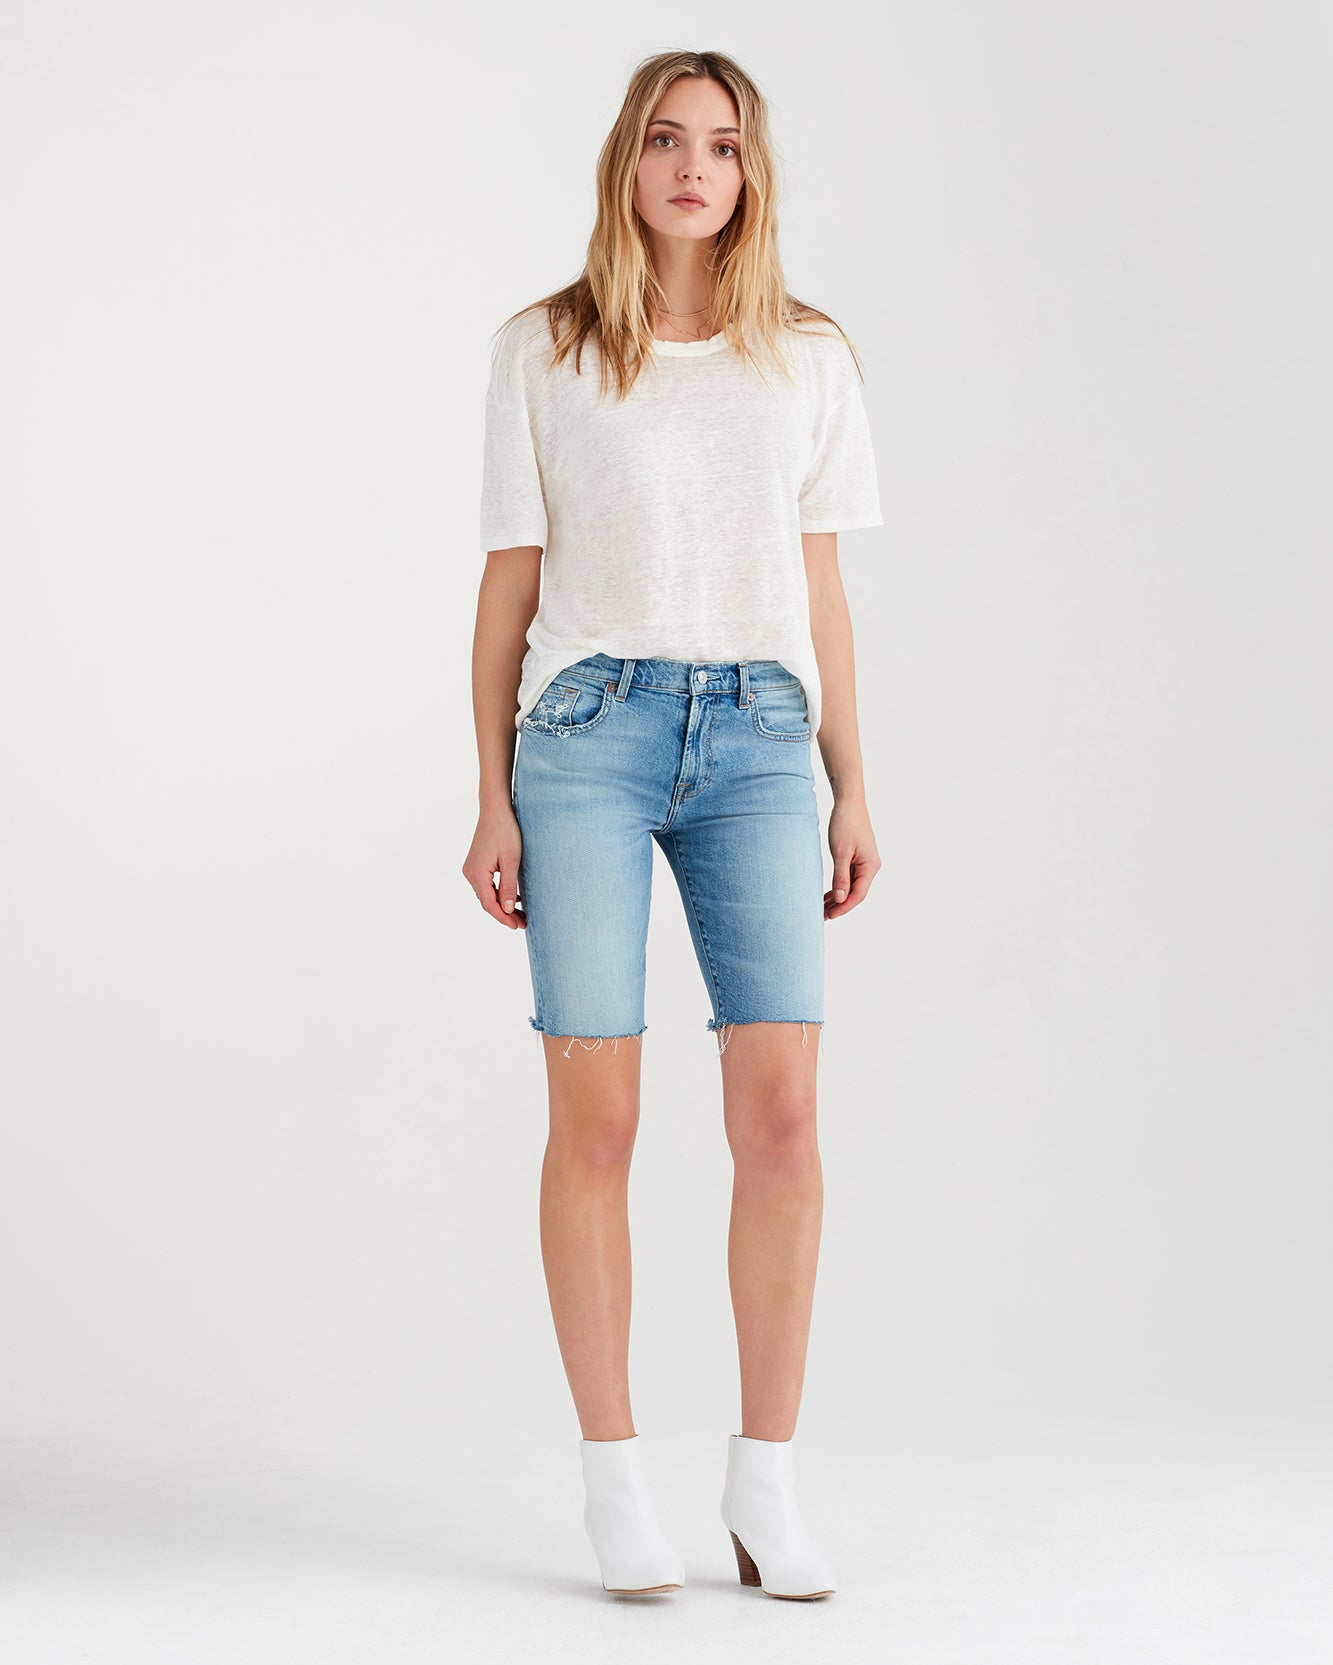 Image of High Waist Straight Bermuda Short with Destroy in Light Gallery Row